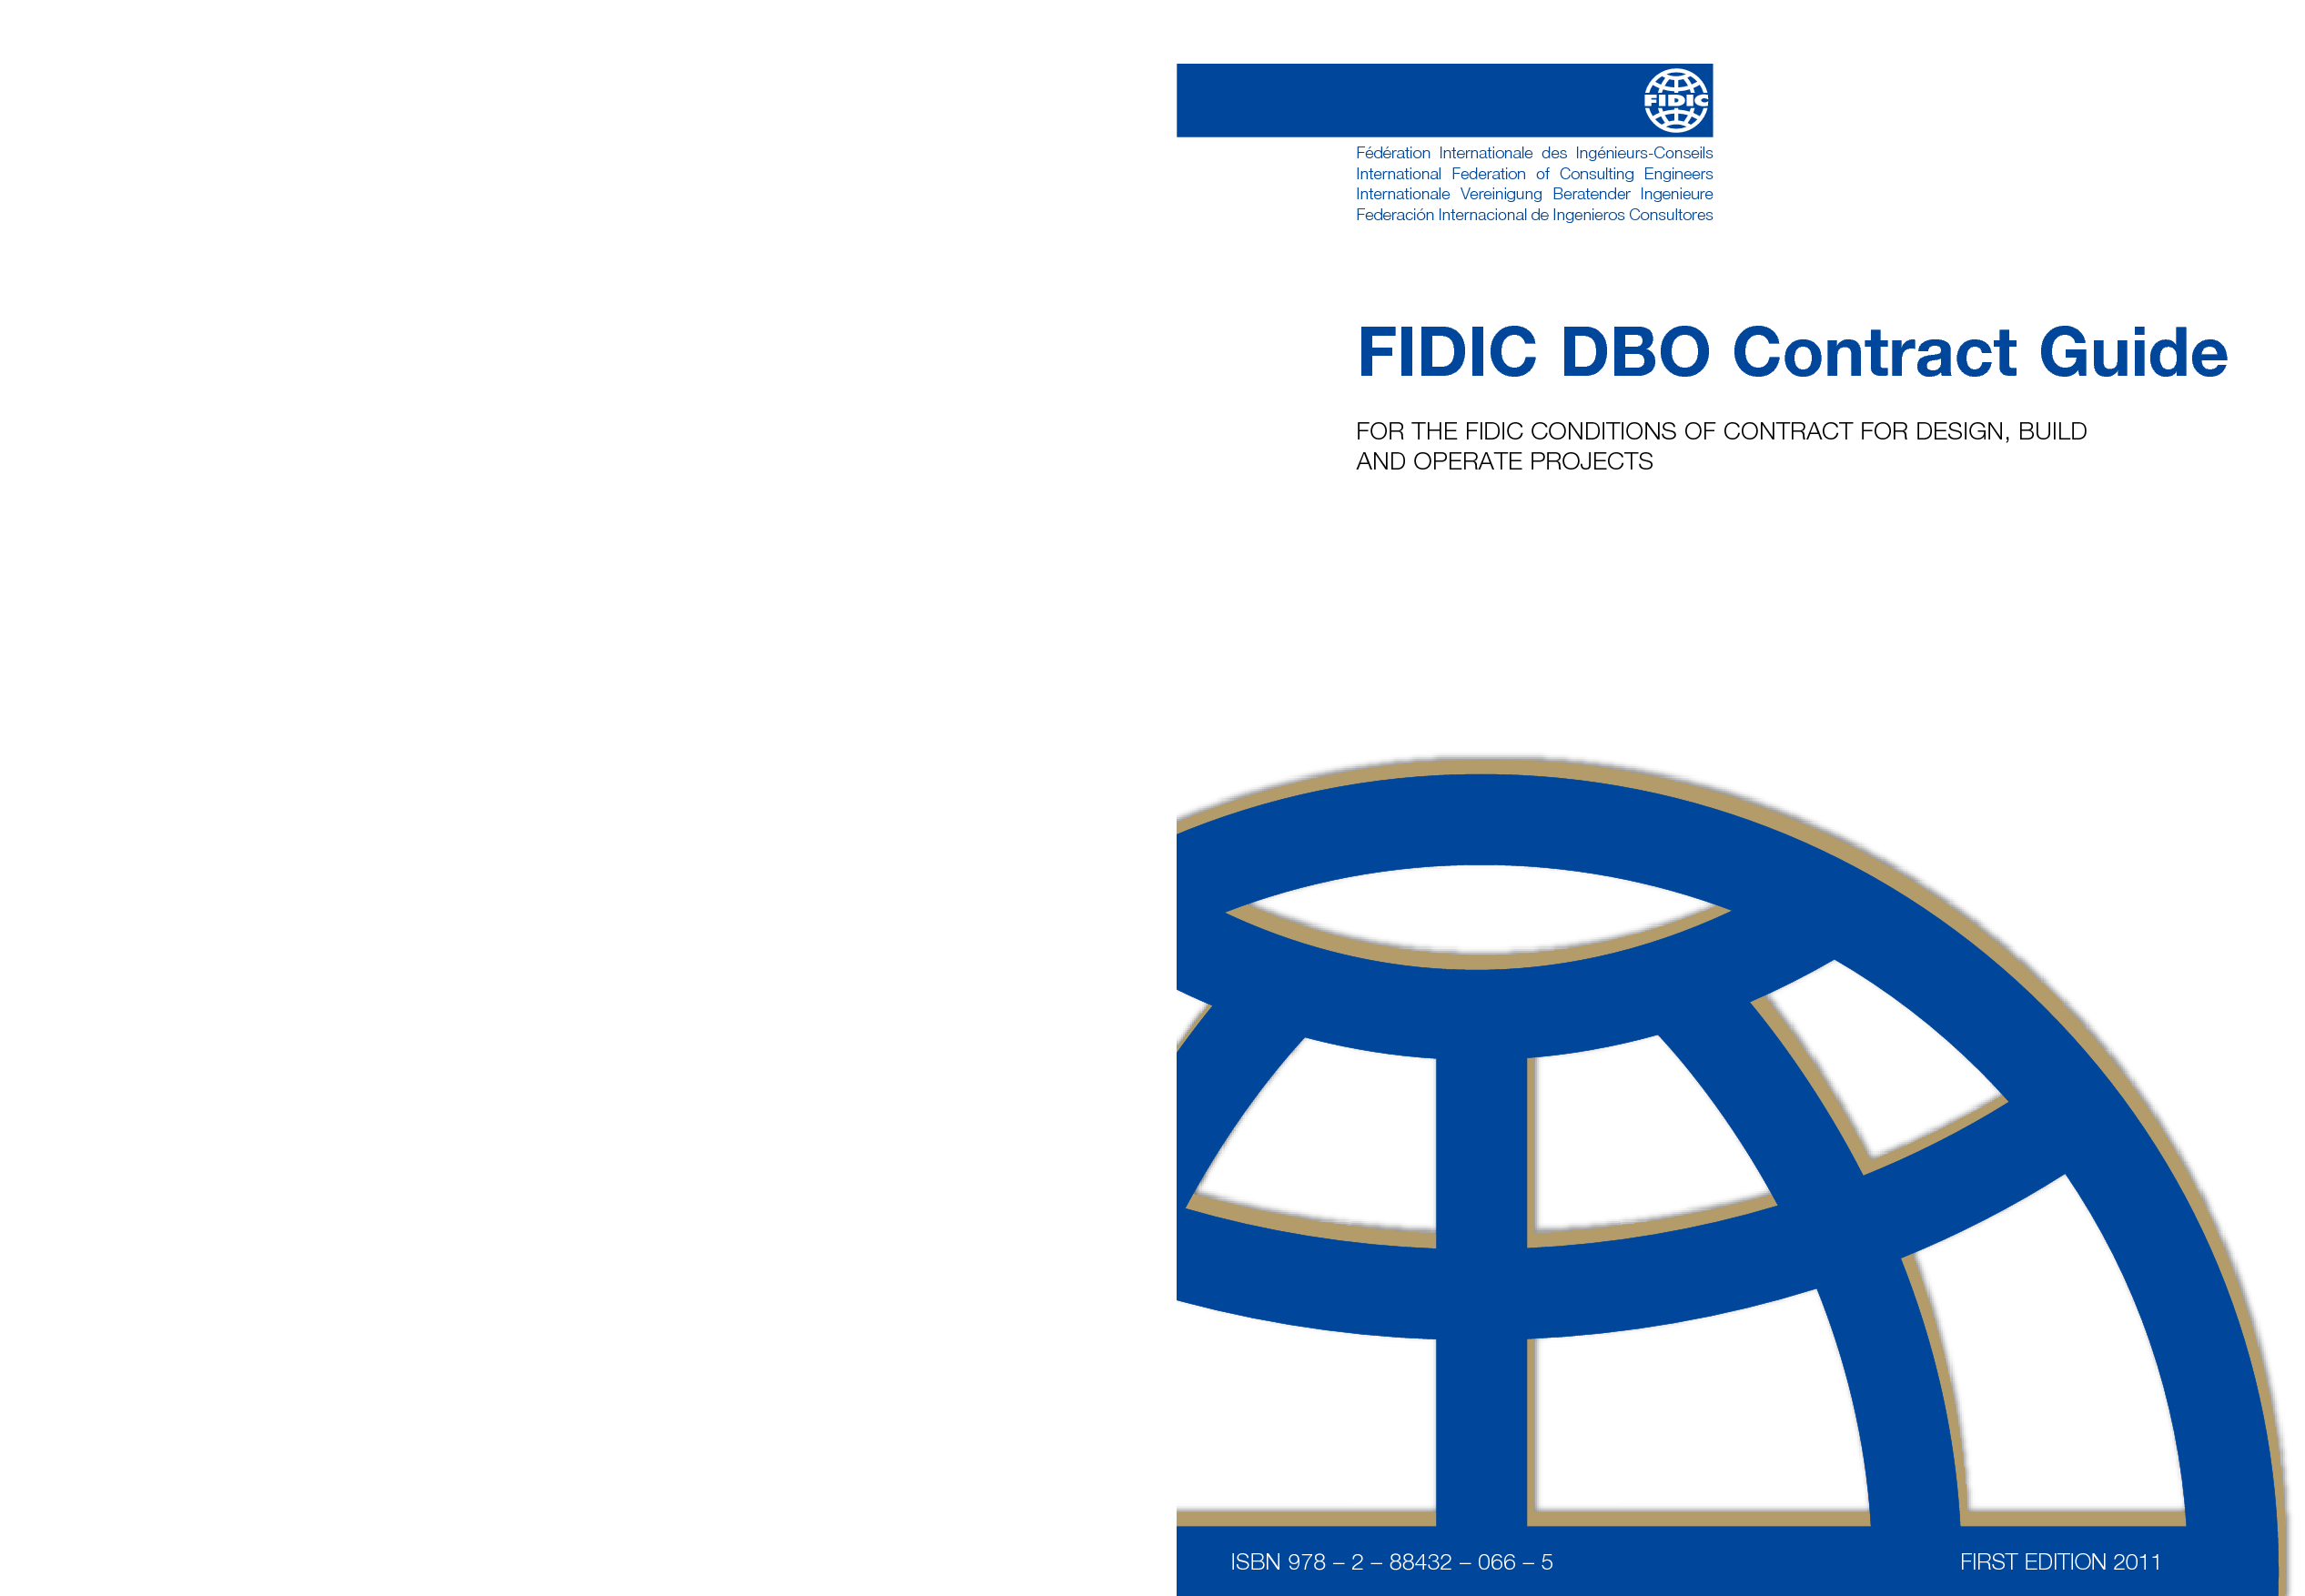 dbo 2008 gold book contract guide 1st edition 2011 international rh fidic org FIDIC Logo Enge FIDIC Logo Enge